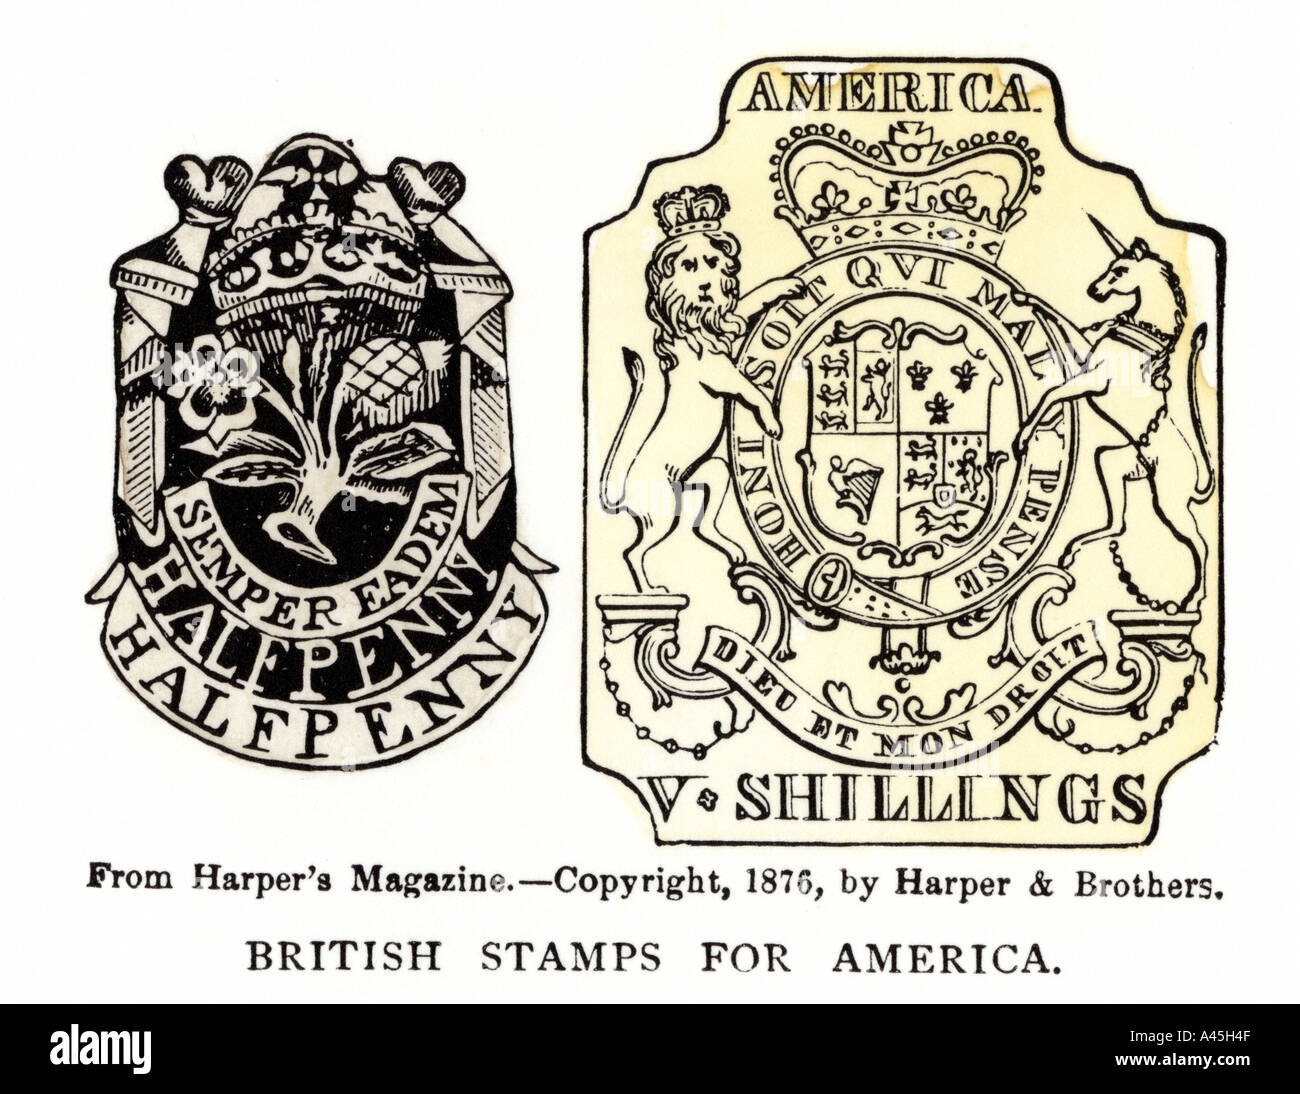 British stamps for America issued under the Stamp Act half penny and 5 shillings. Woodcut with a watercolor wash - Stock Image